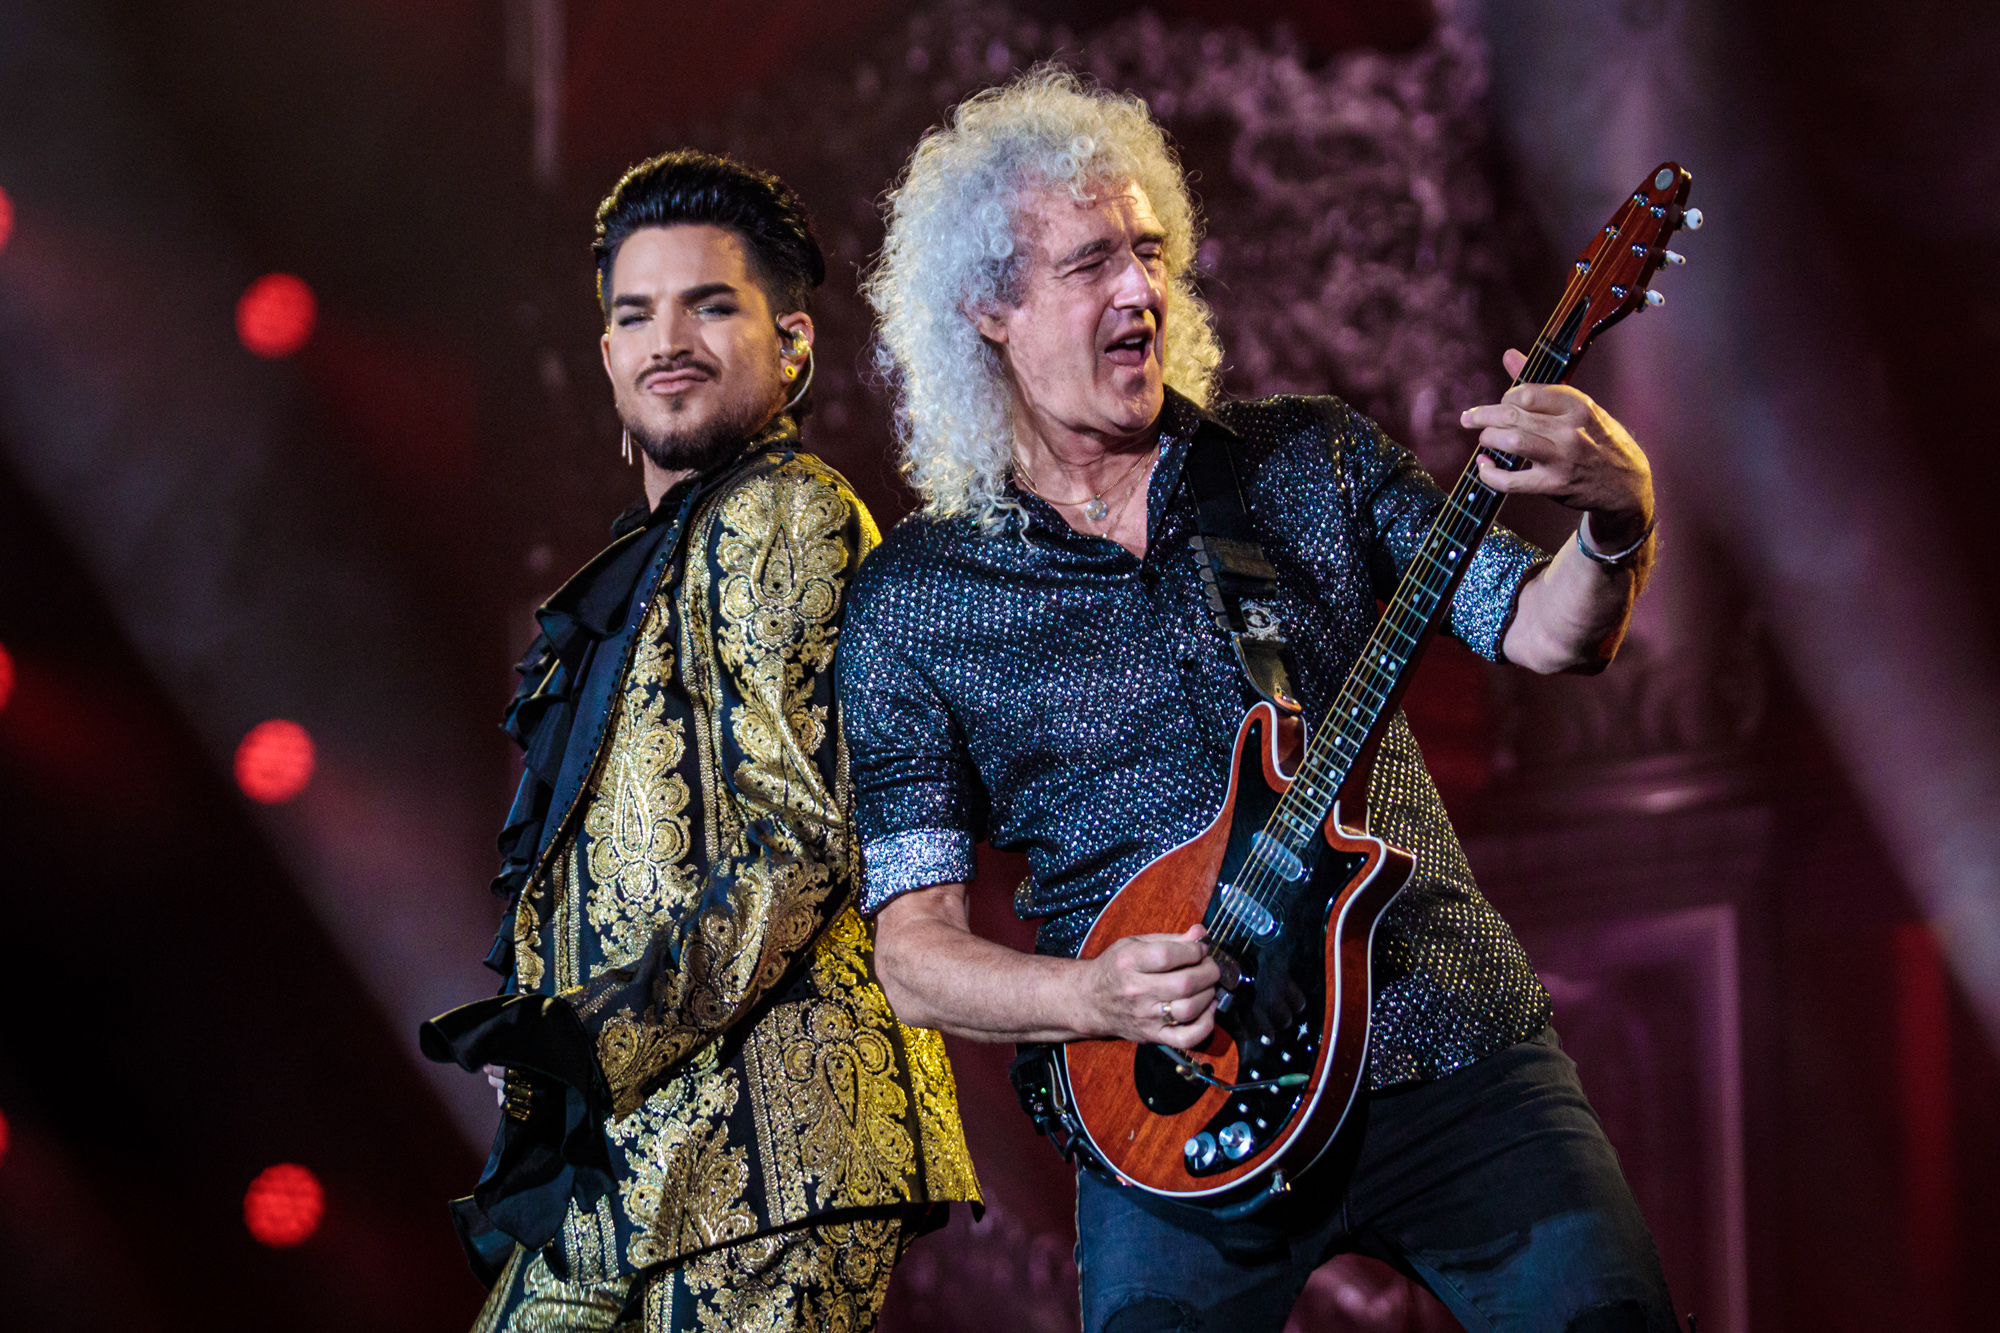 QUEEN + Adam Lambert at Global Citizen Festival